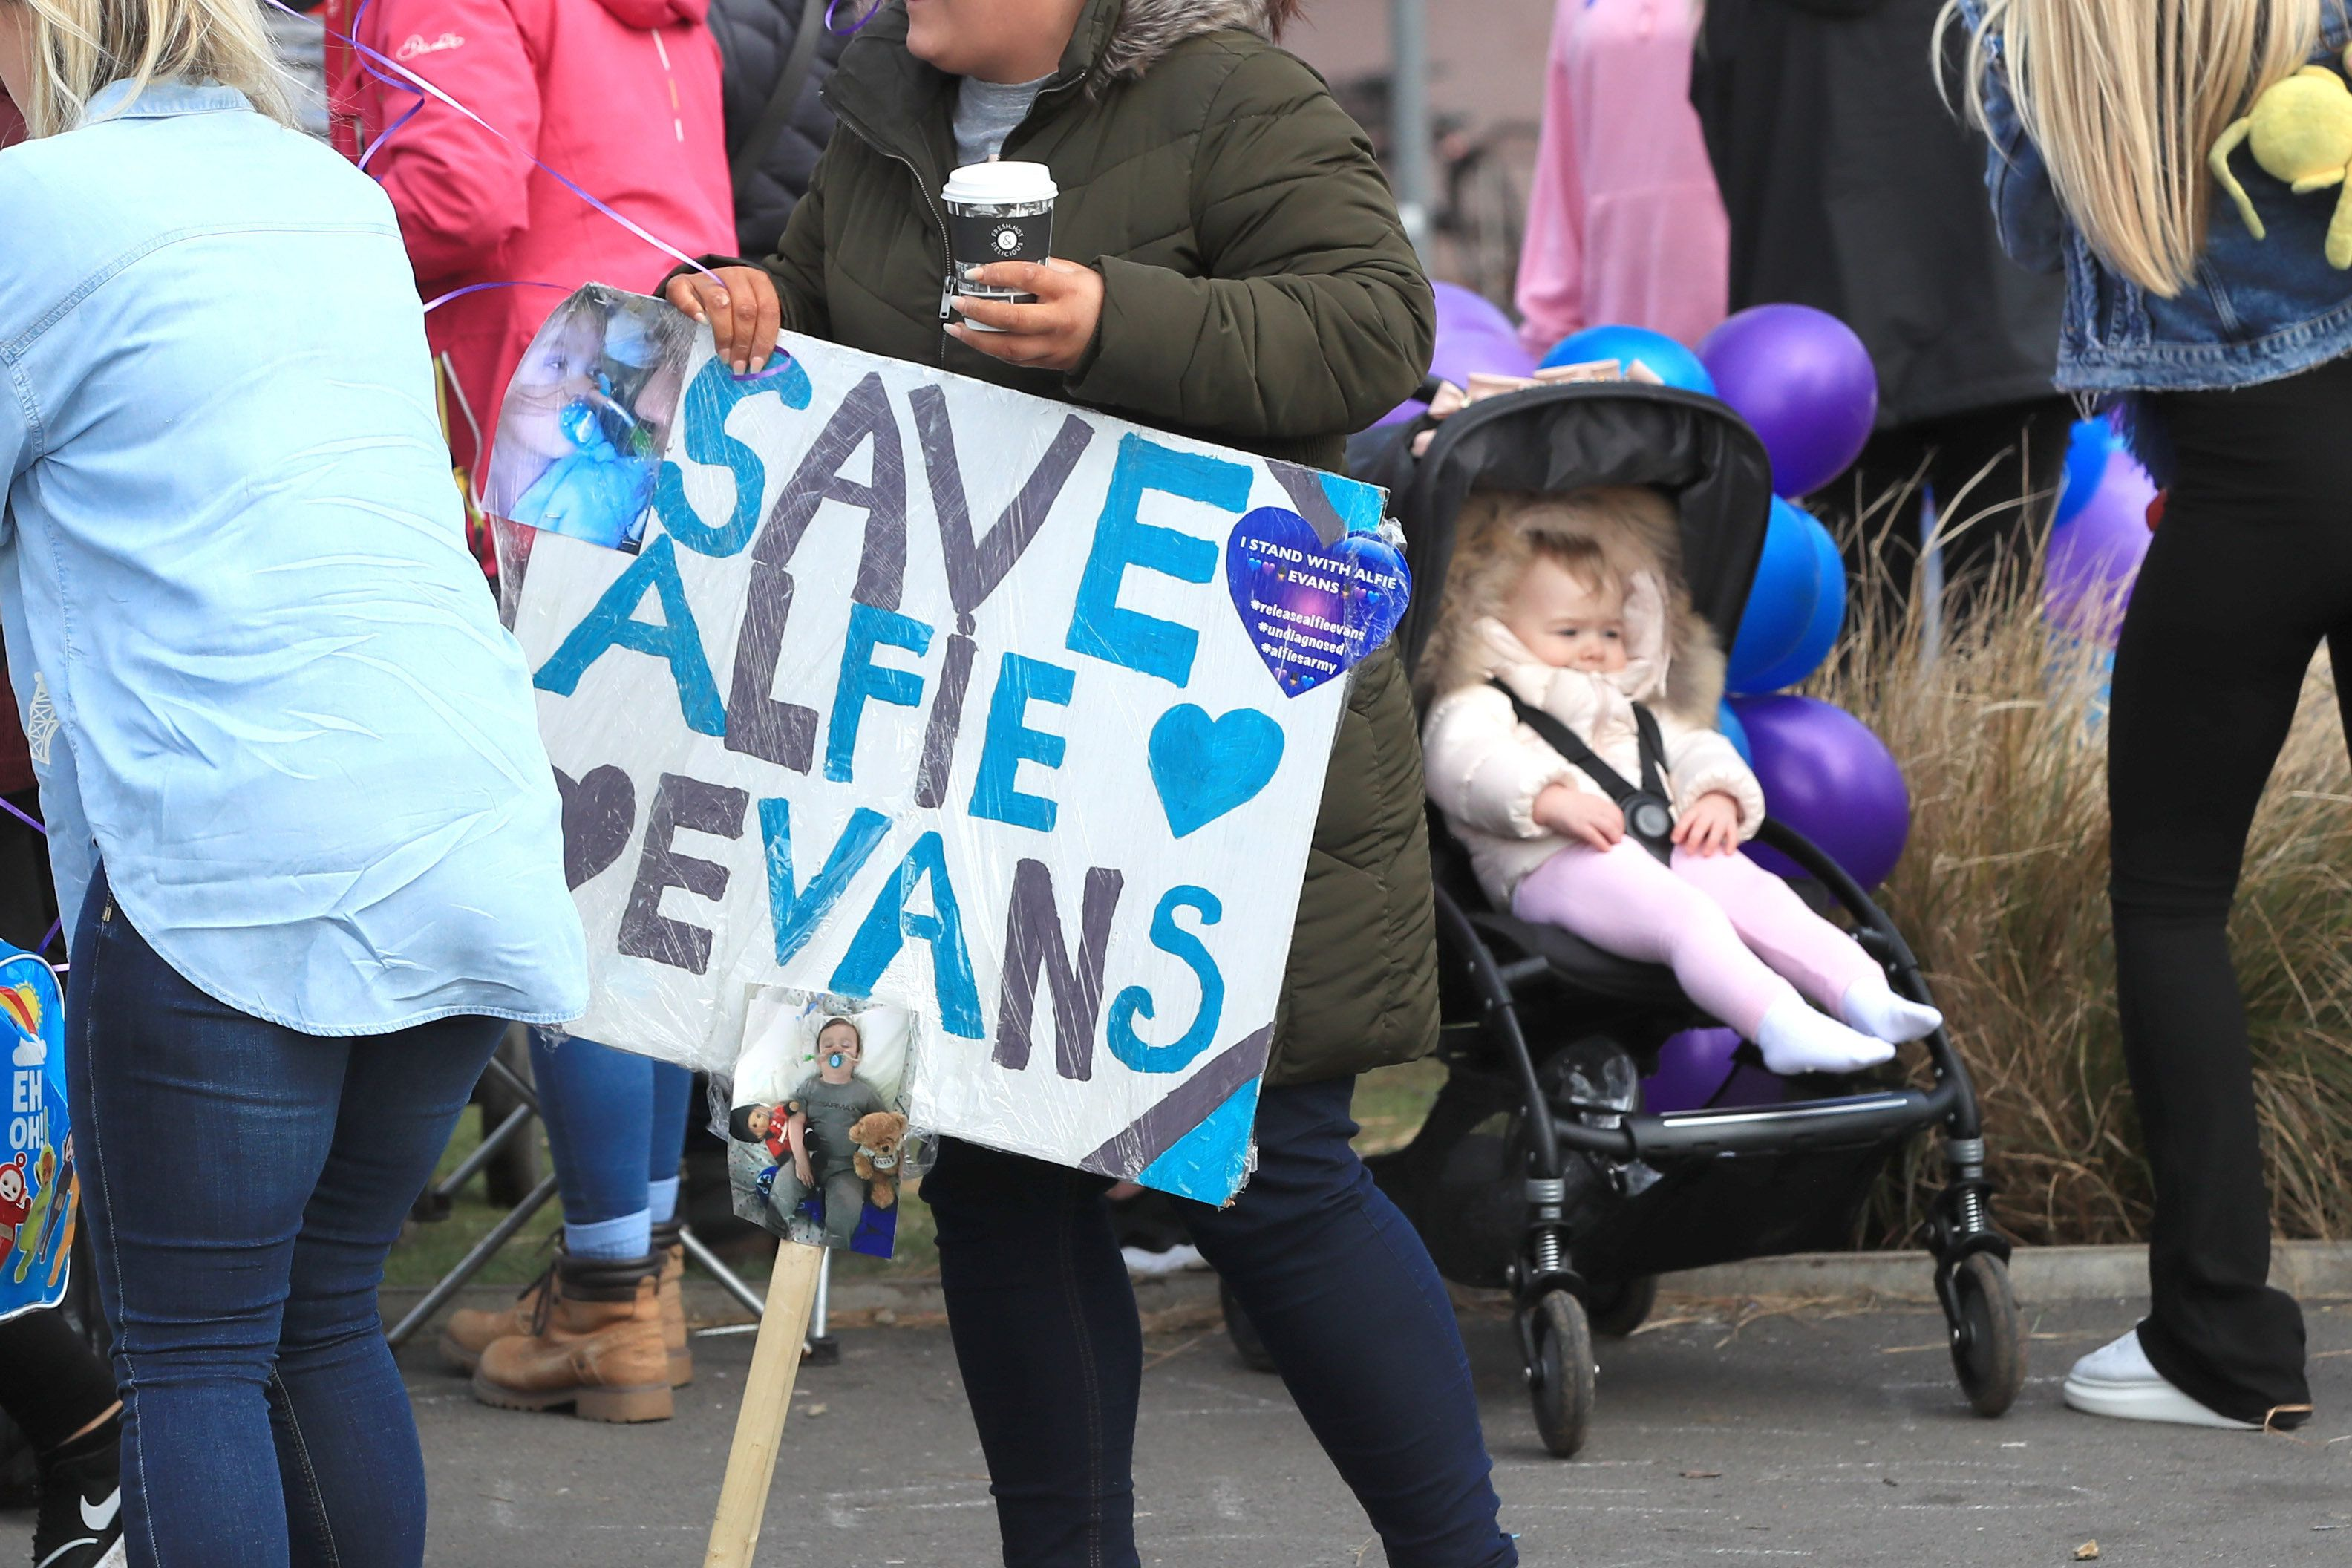 Protestors gather outside Alder Hey Children's Hospital in Liverpool whilst they wait for the latest decision on Alfie Evans